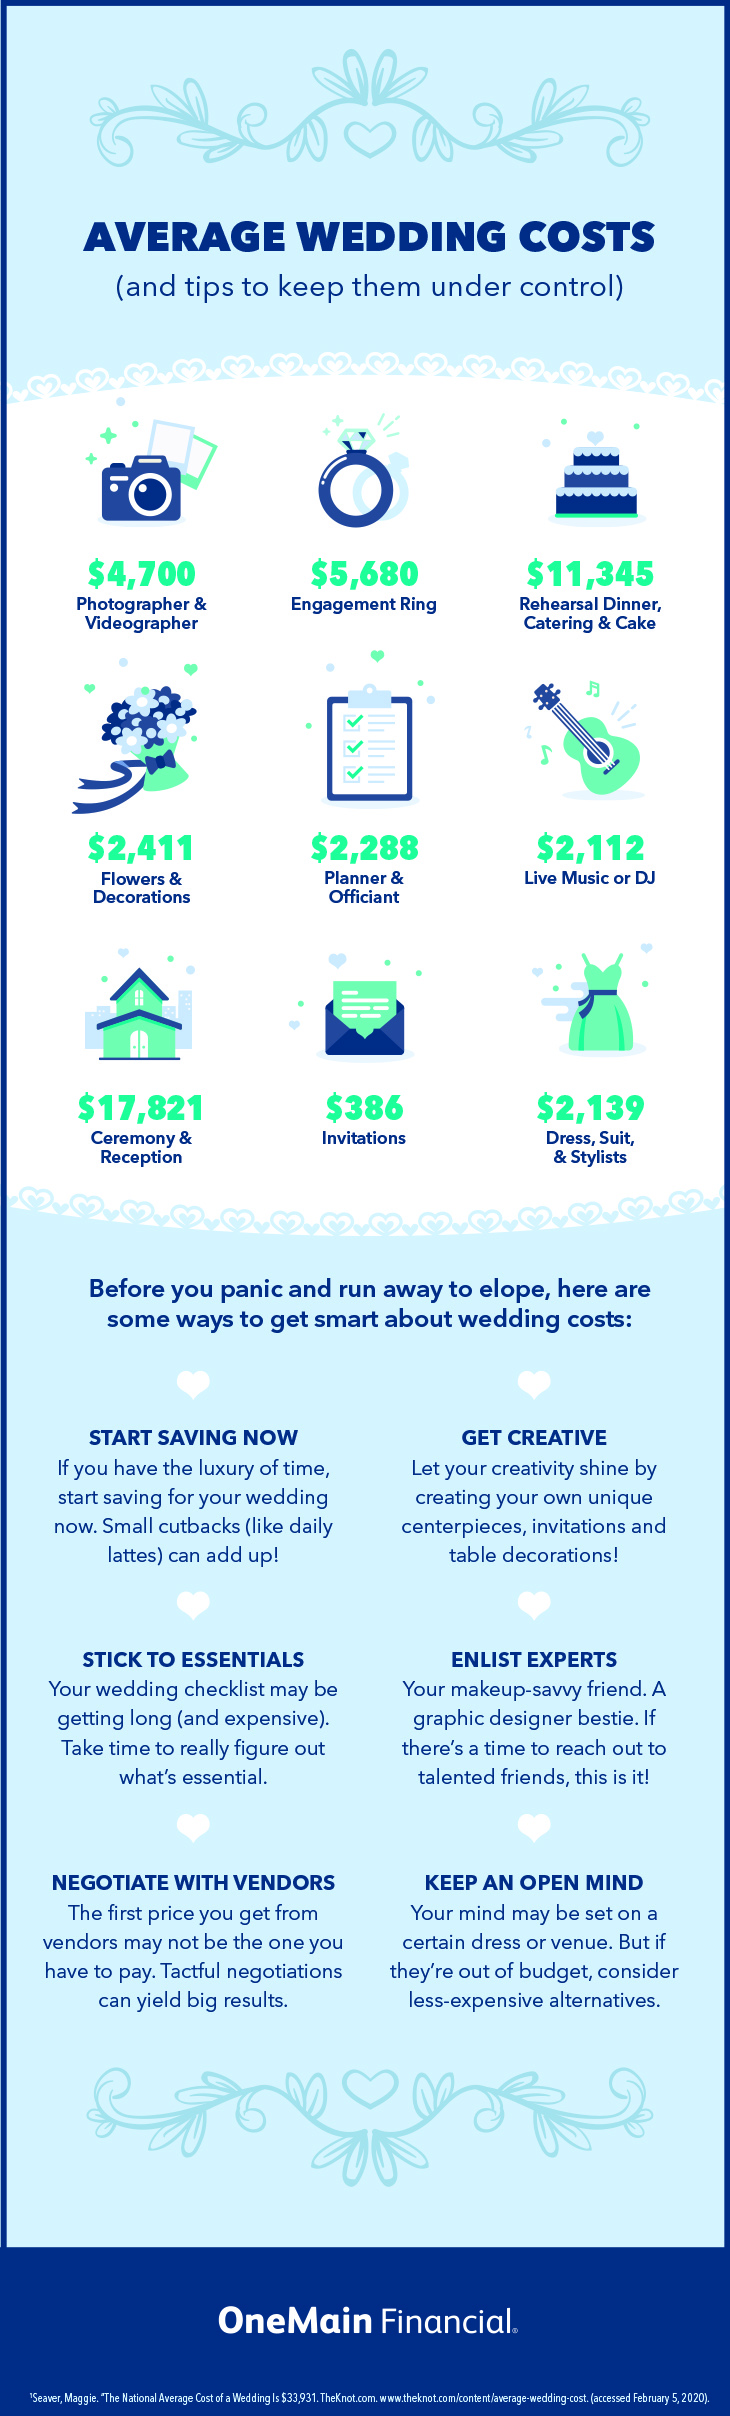 Infographic by OneMain Financial with a breakdown of average wedding costs and tips on how to pay for a wedding